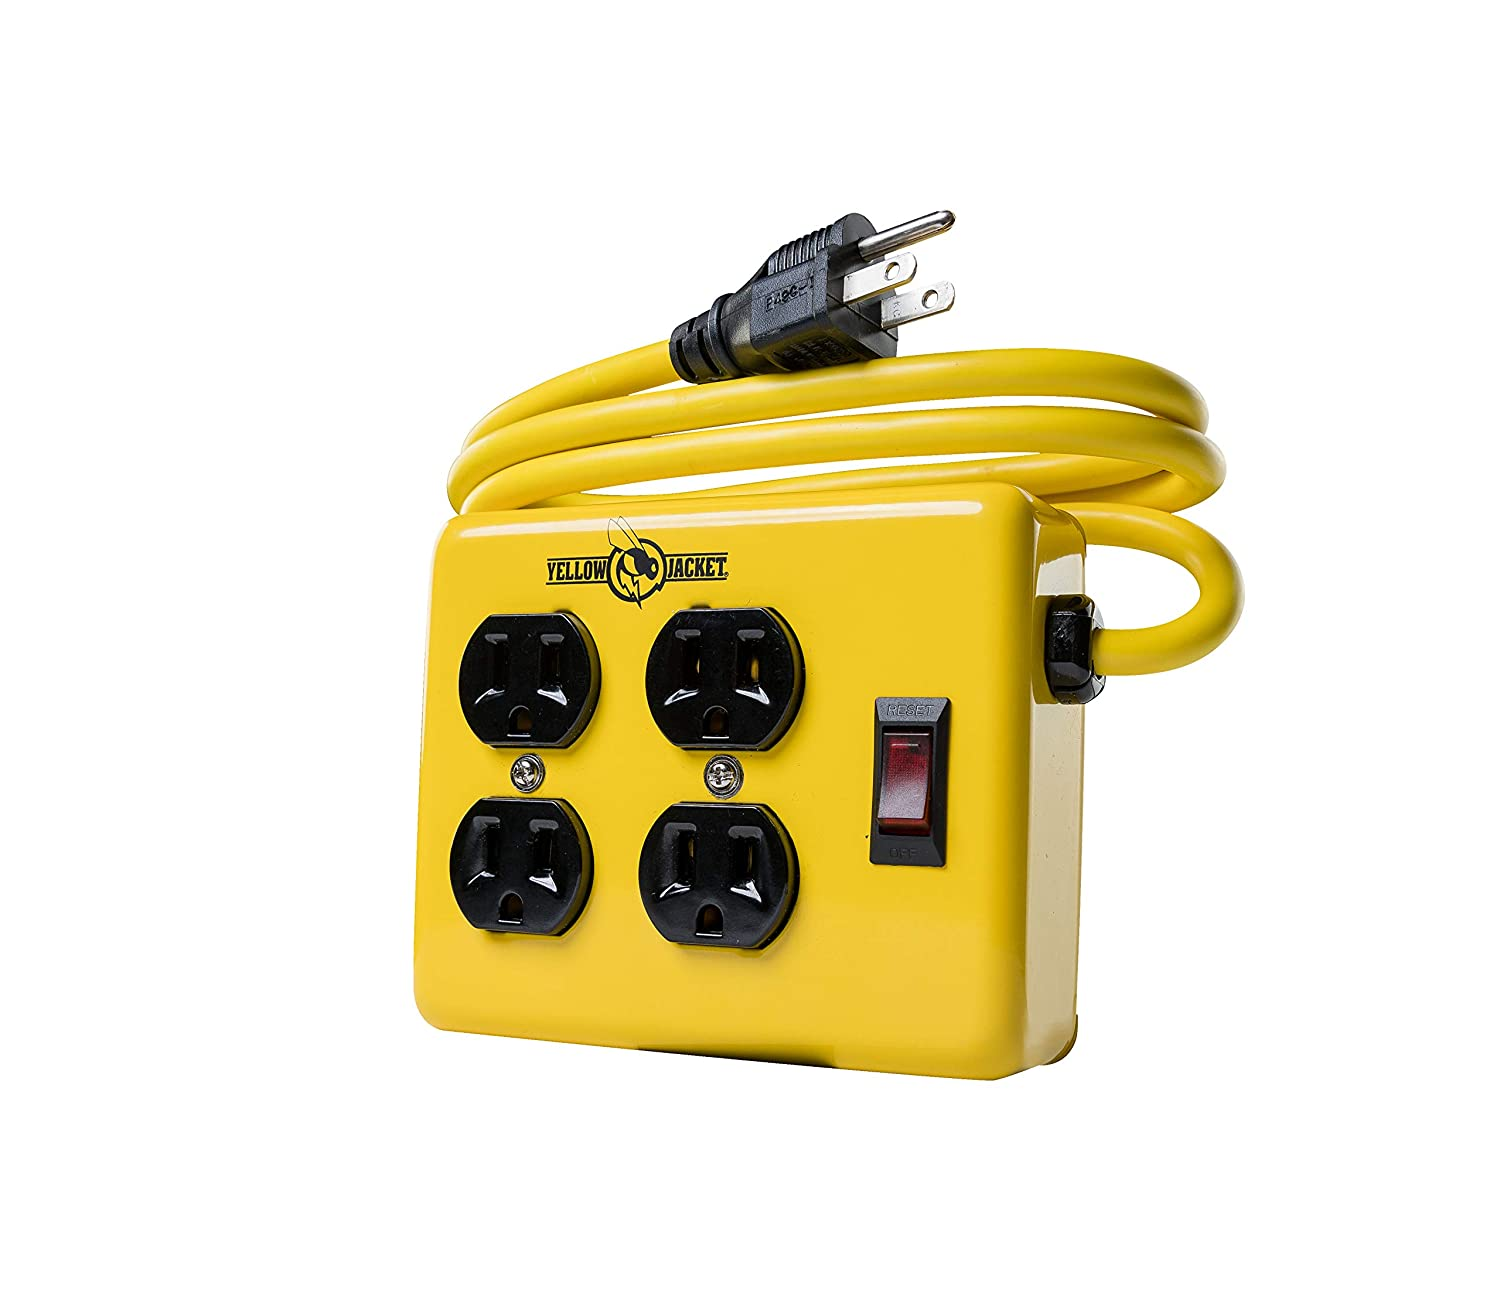 Yellow Jacket 2177N Metal Power Supply Adapter Block with 4 Outlets And Lighted Switch, 4-foot Cord